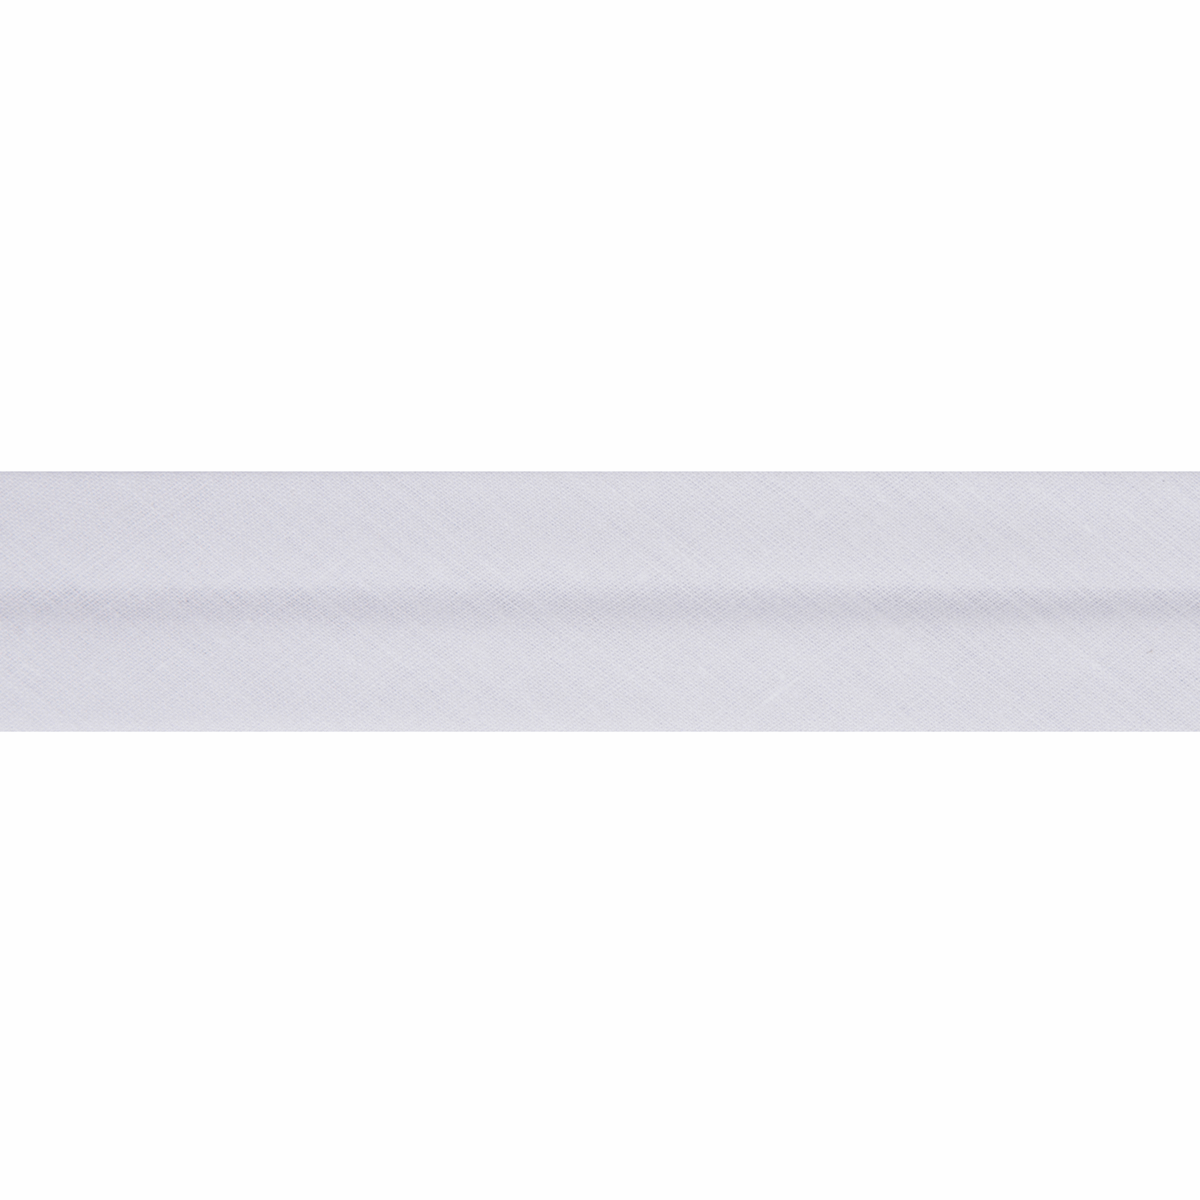 Picture of Bias Binding: Polycotton: 20m x 25mm: White